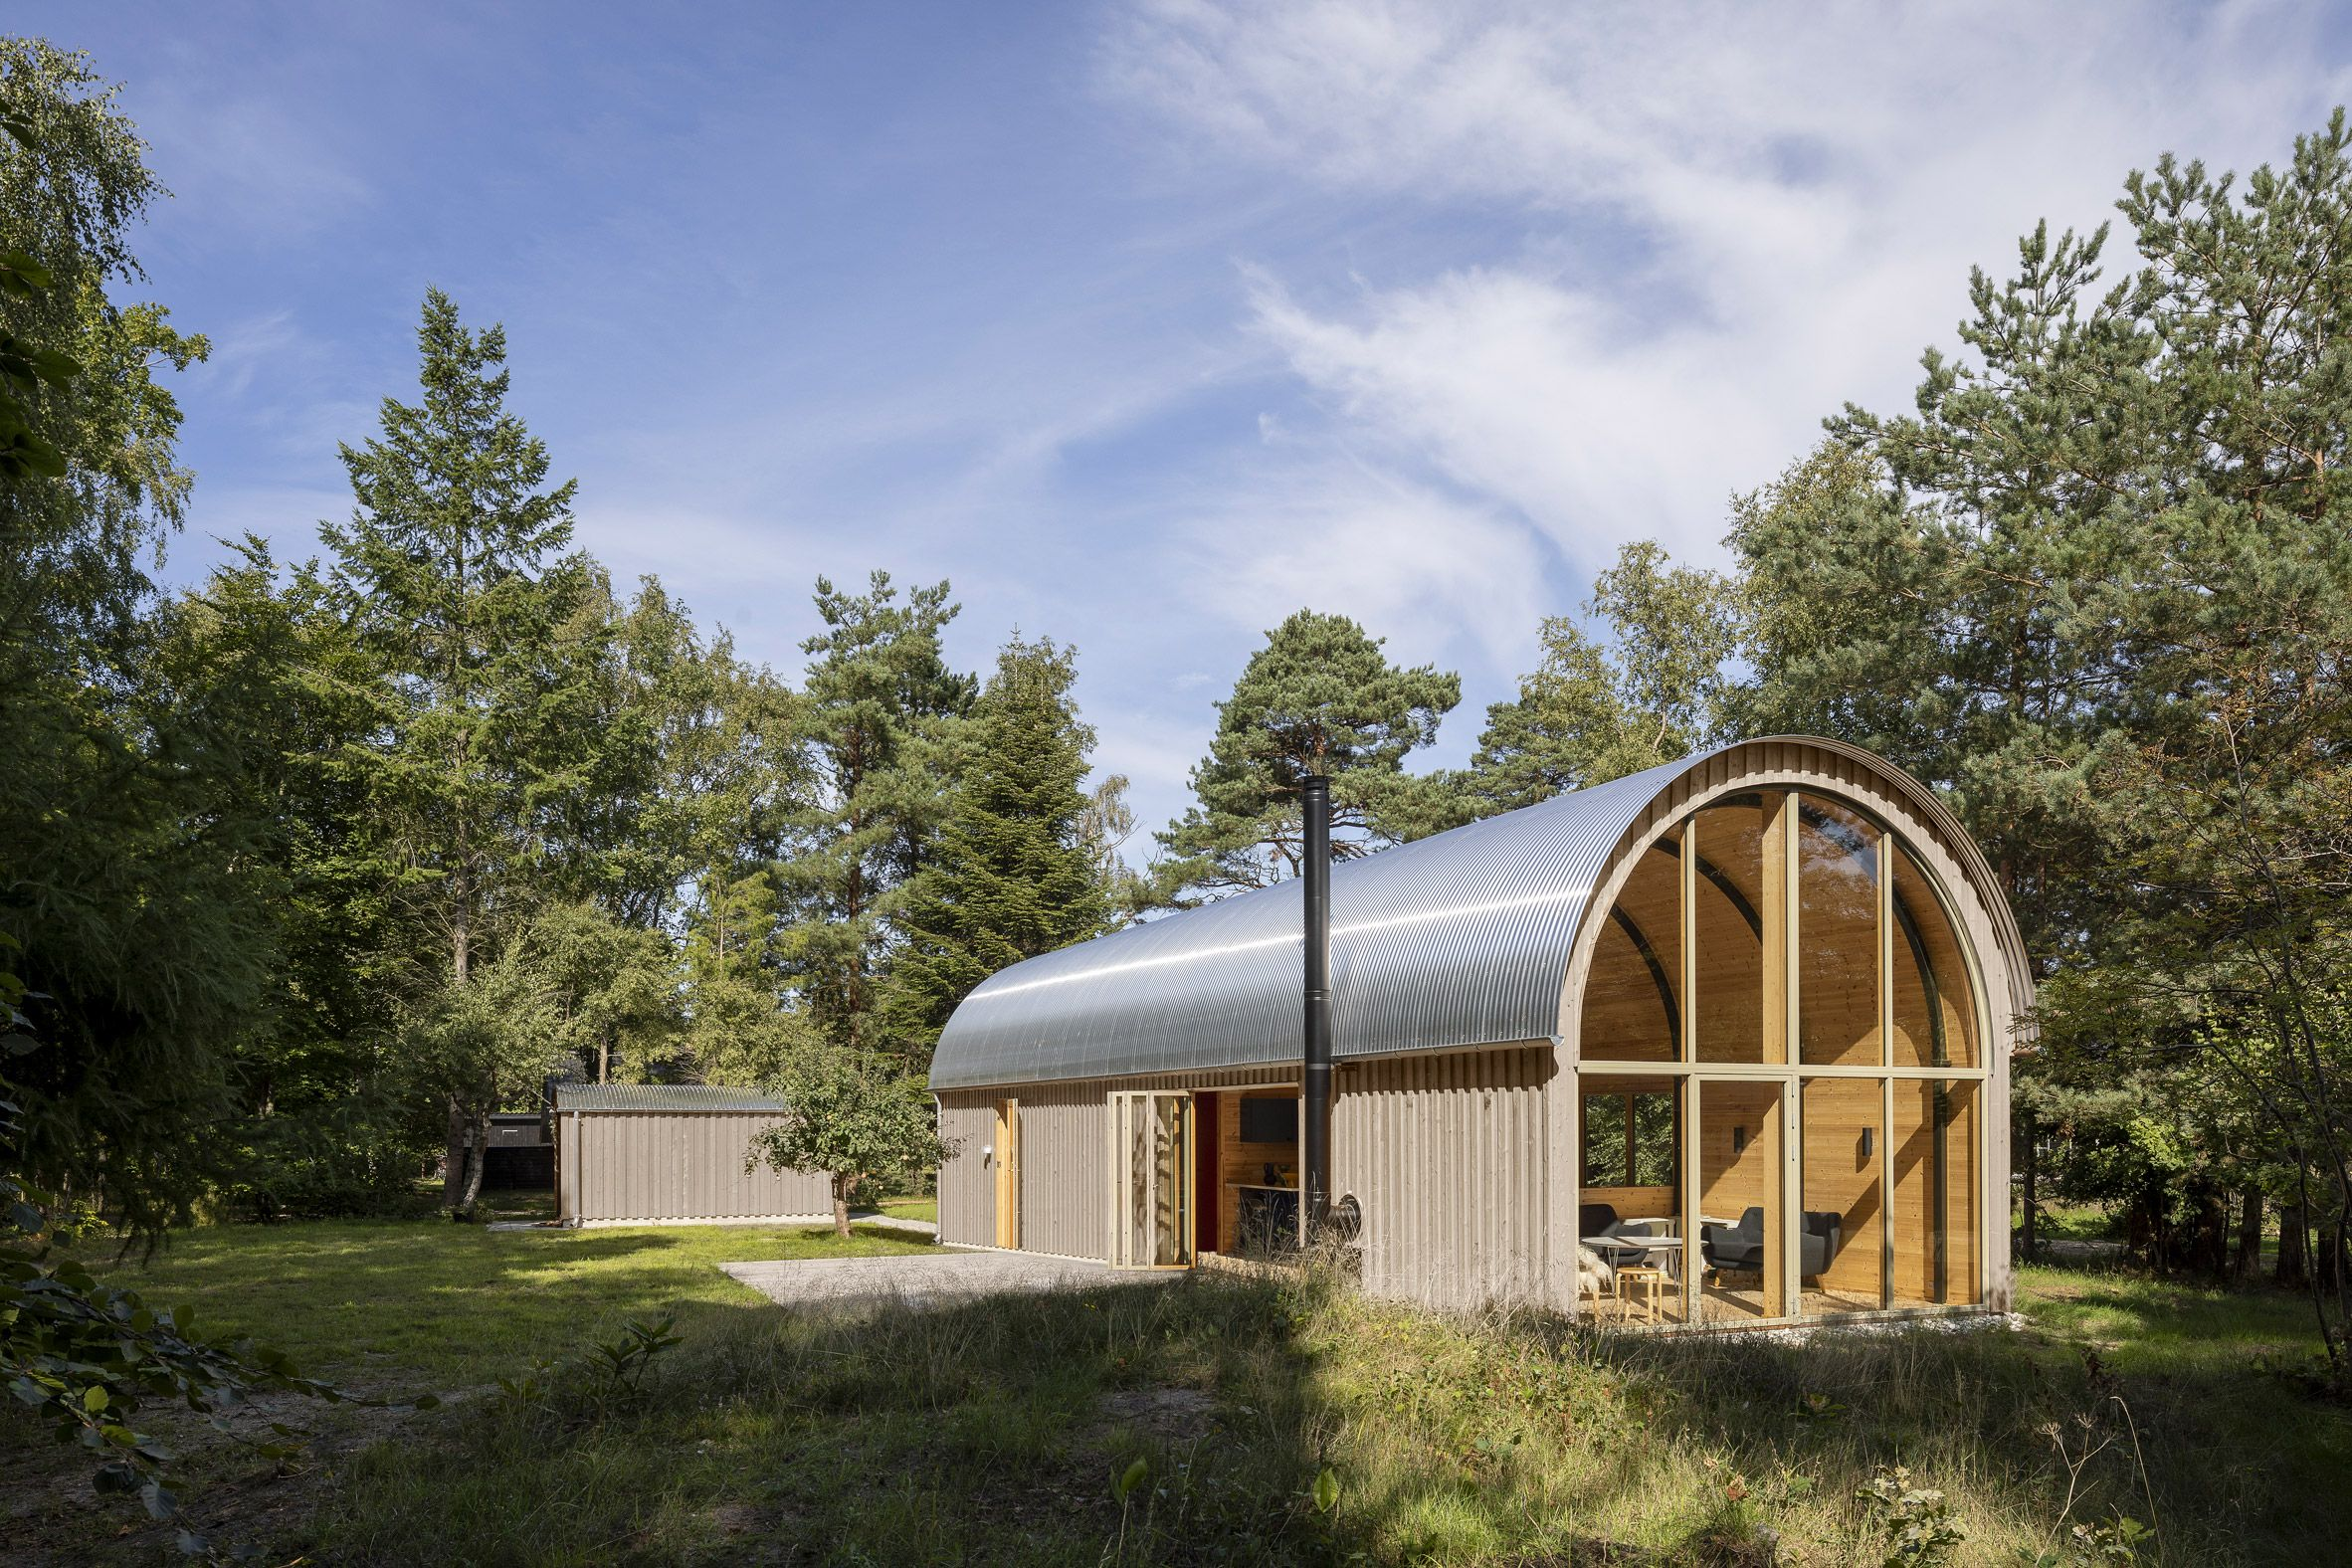 A Barrel Vault Topped With Corrugated Steel Forms The Dramatic Pine Living Space Within This Summer Cabin Near Th Corrugated Metal Roof Metal Roof Summer House